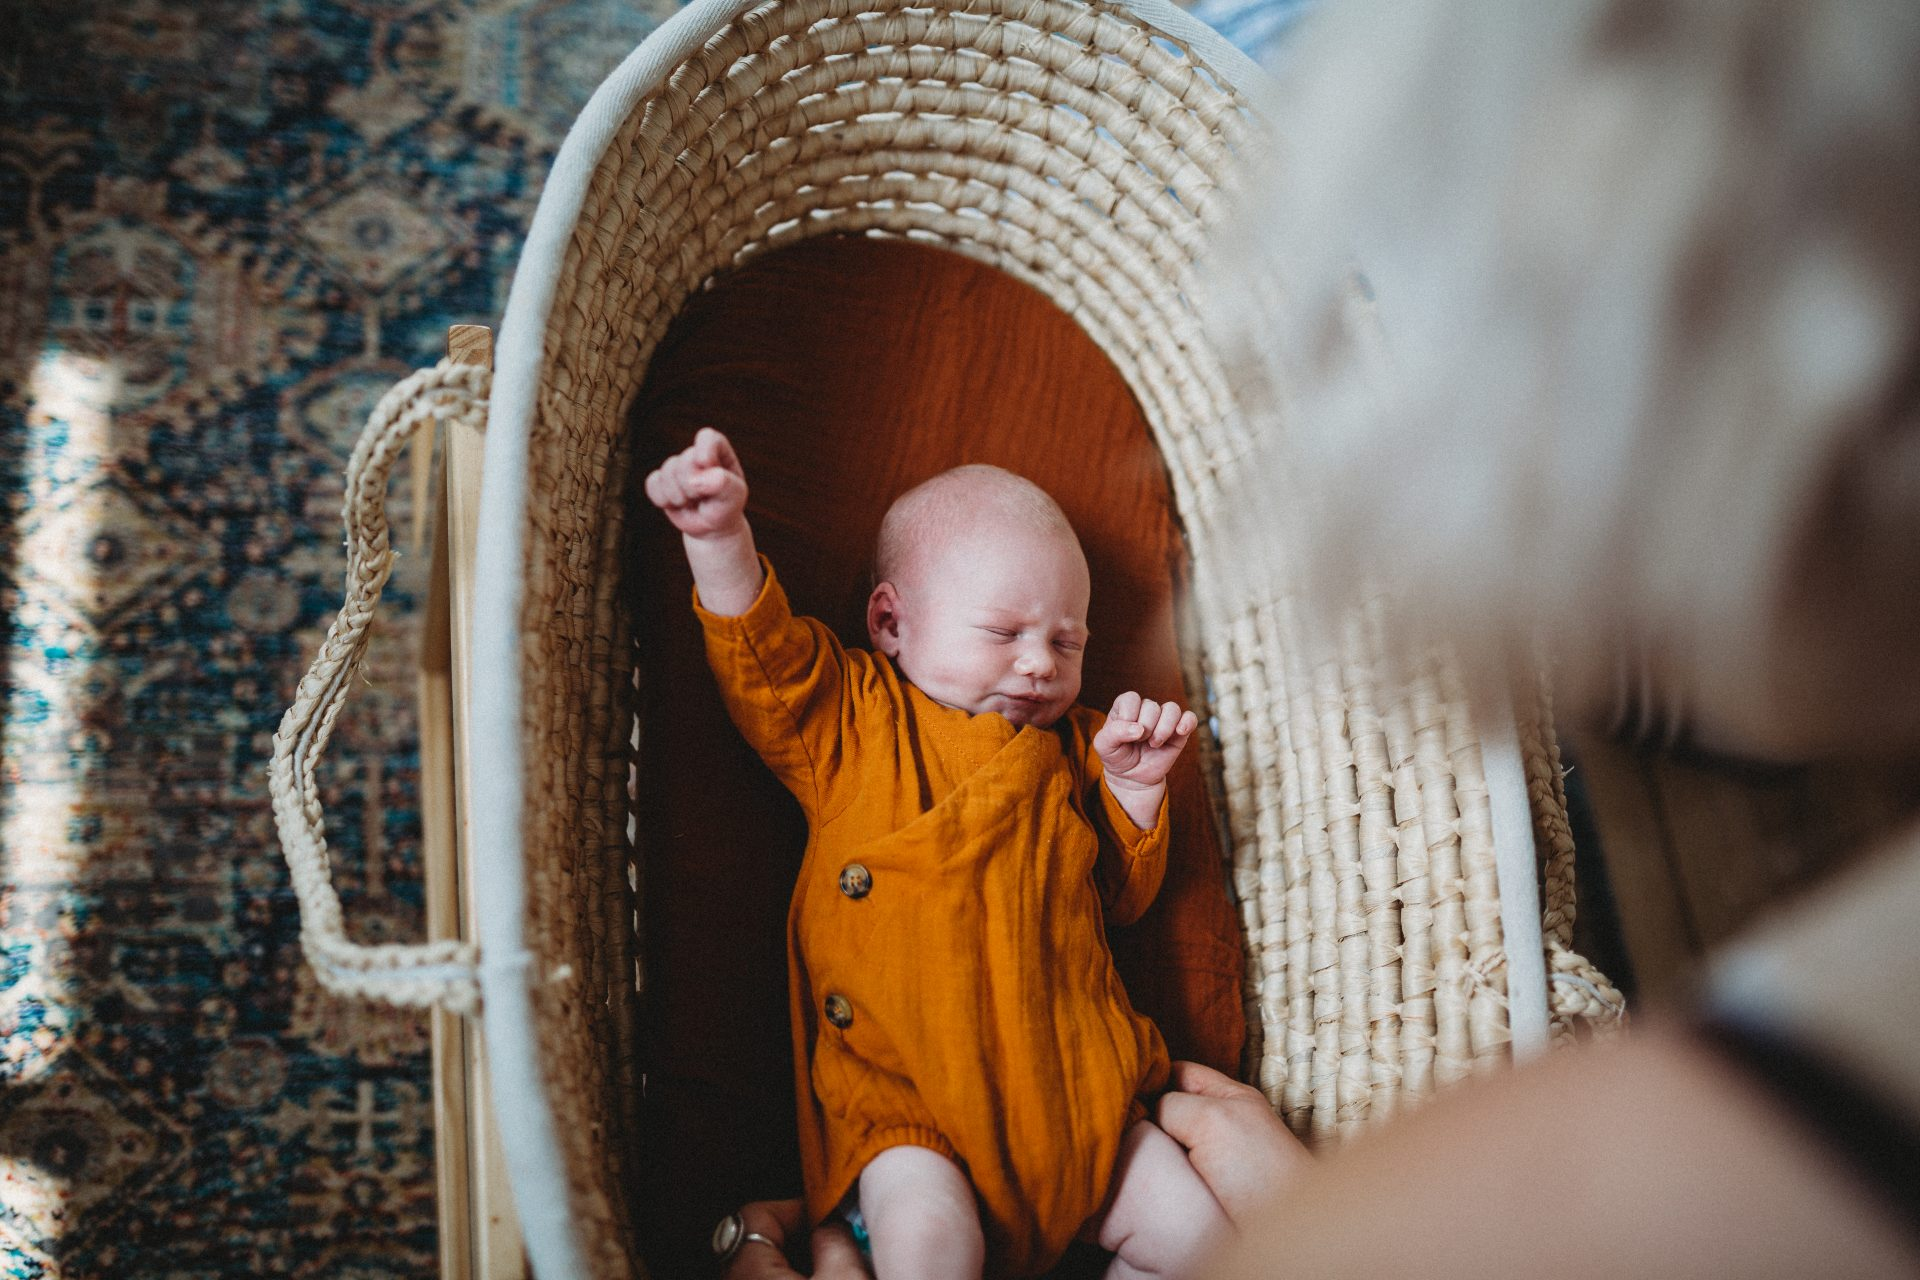 Baby in wicker basket, appearing to be fist pumping the sky, as mother looks over him